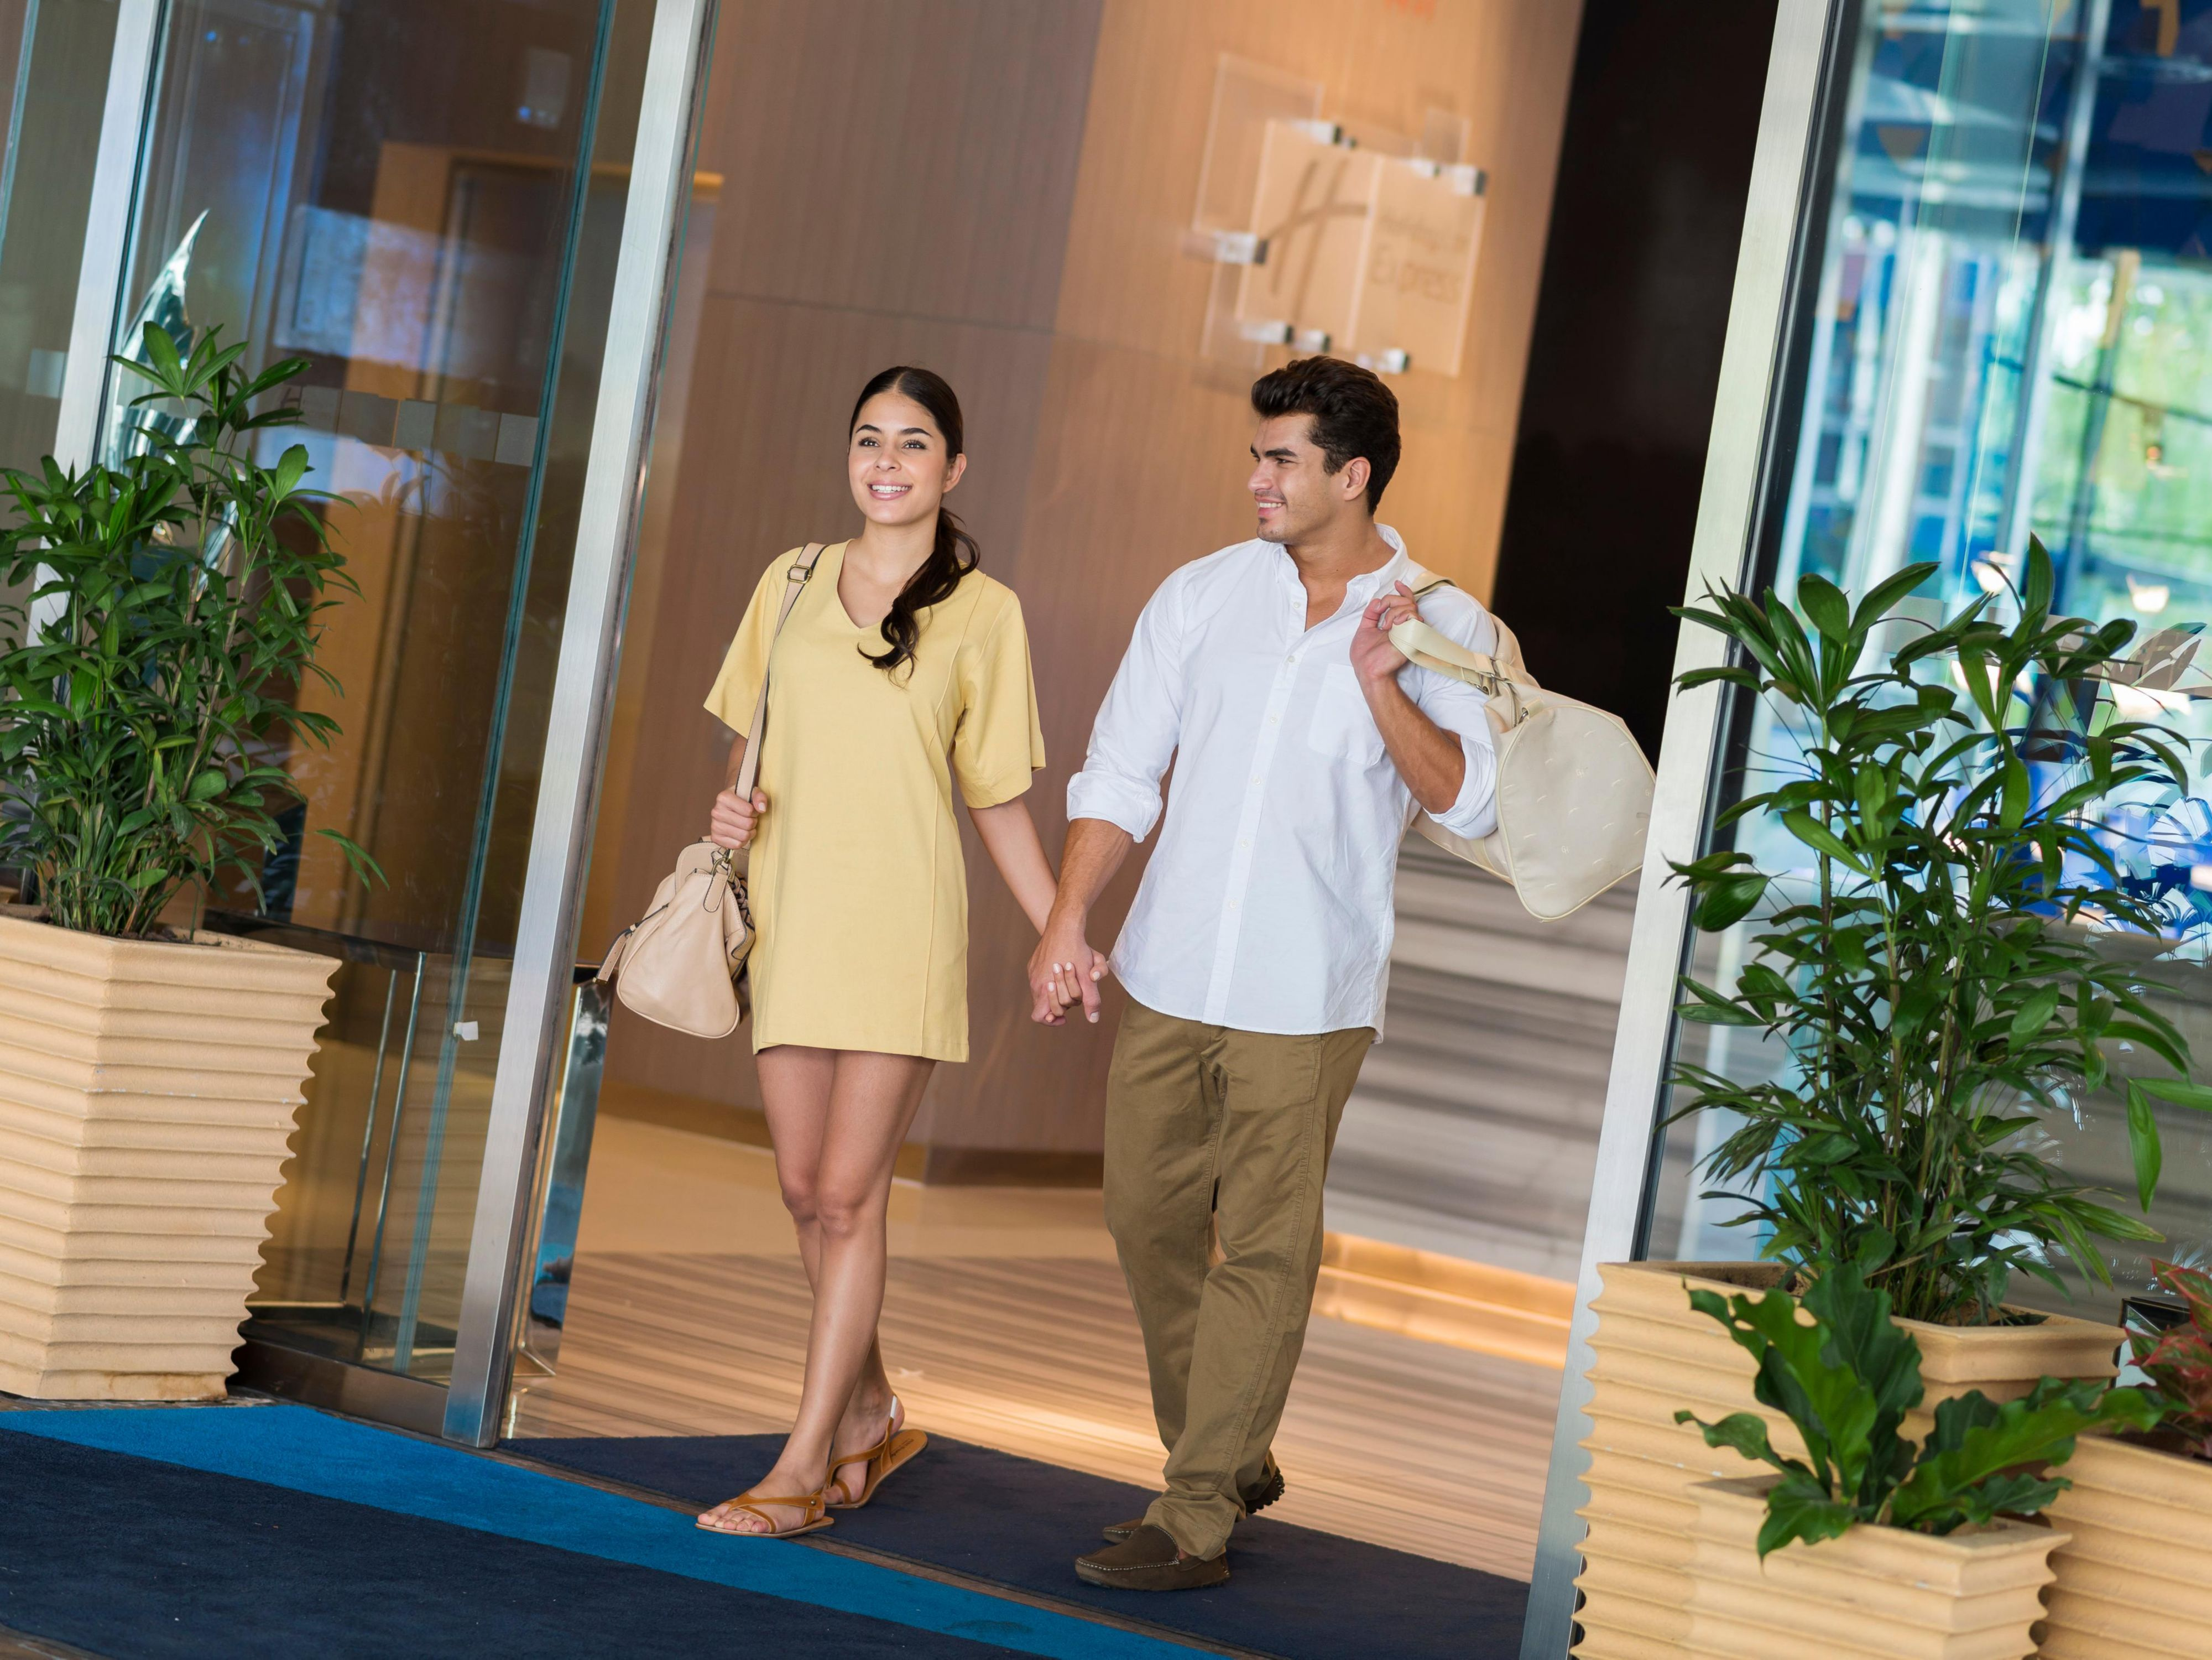 Shopping Malls take only 10 minute walk from our hotel